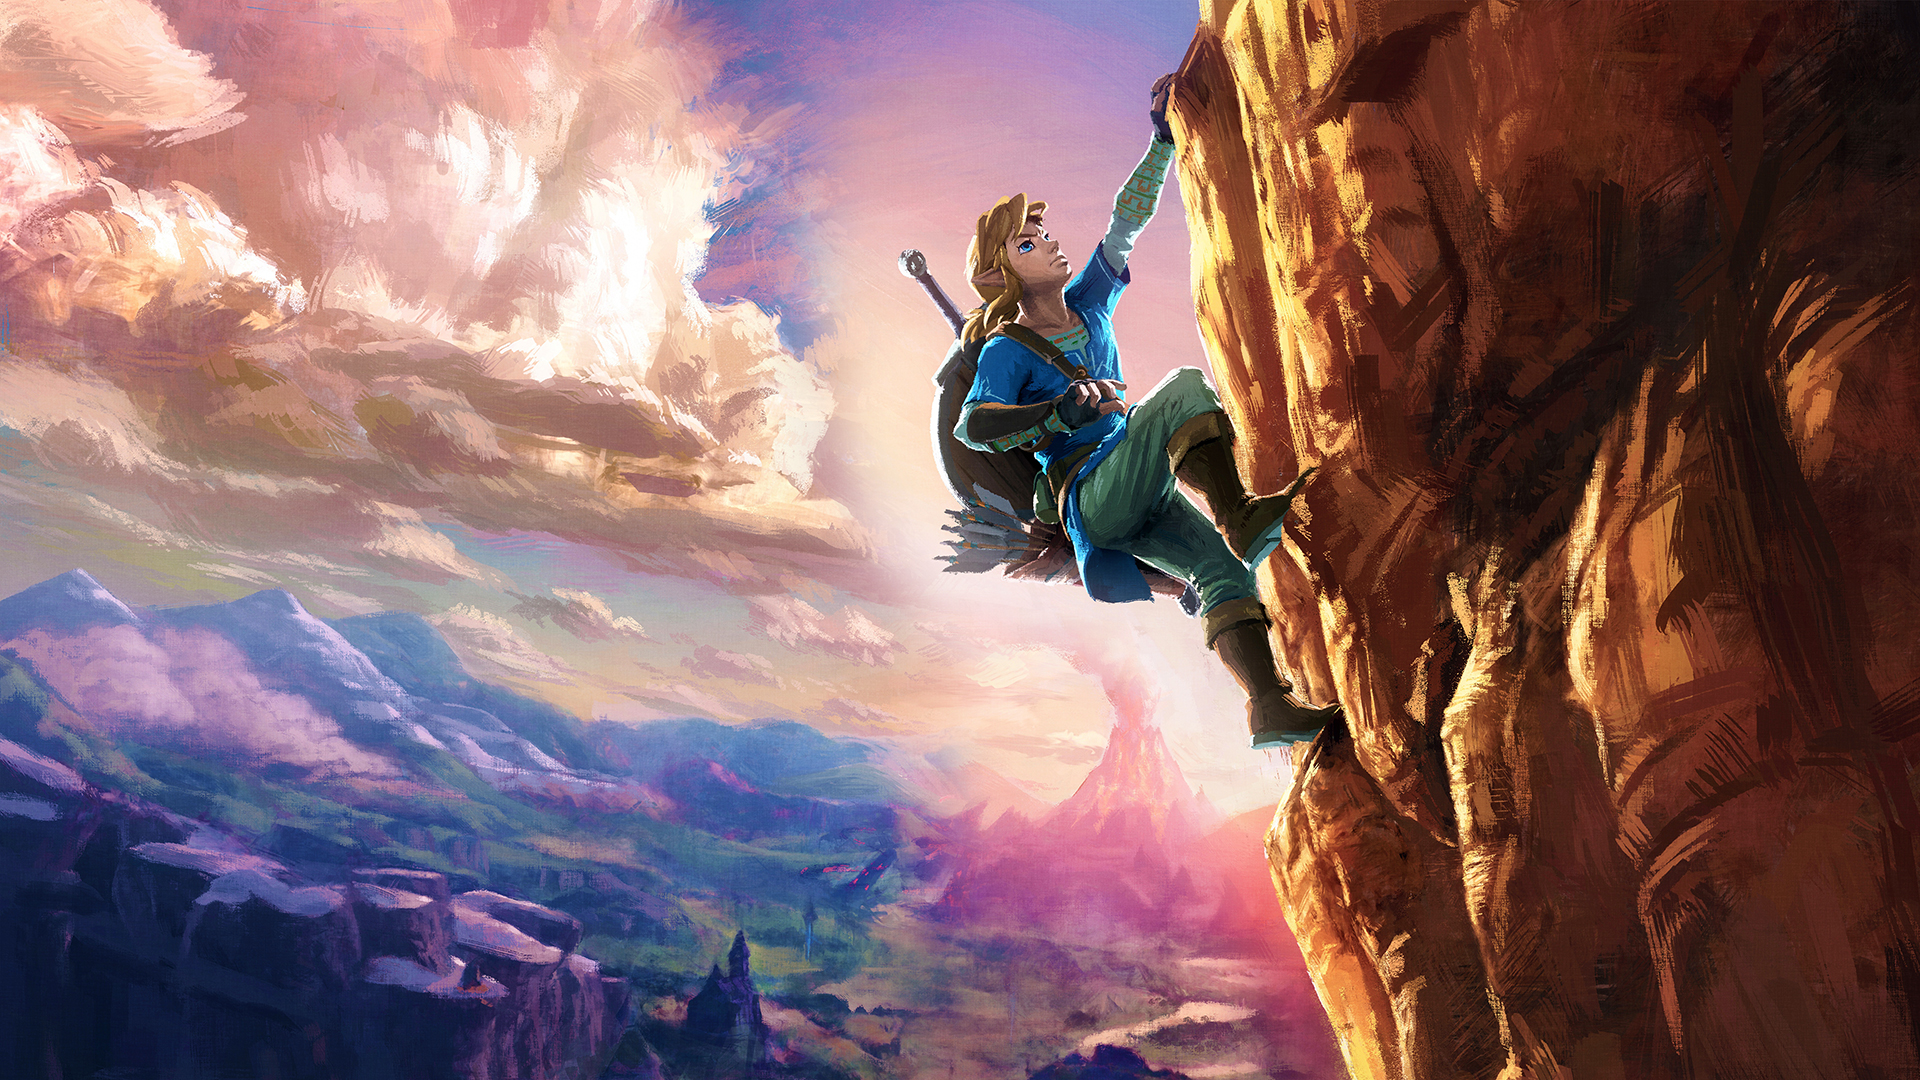 The Legend Of Zelda Breath Of The Wild Chromebook Wallpaper For